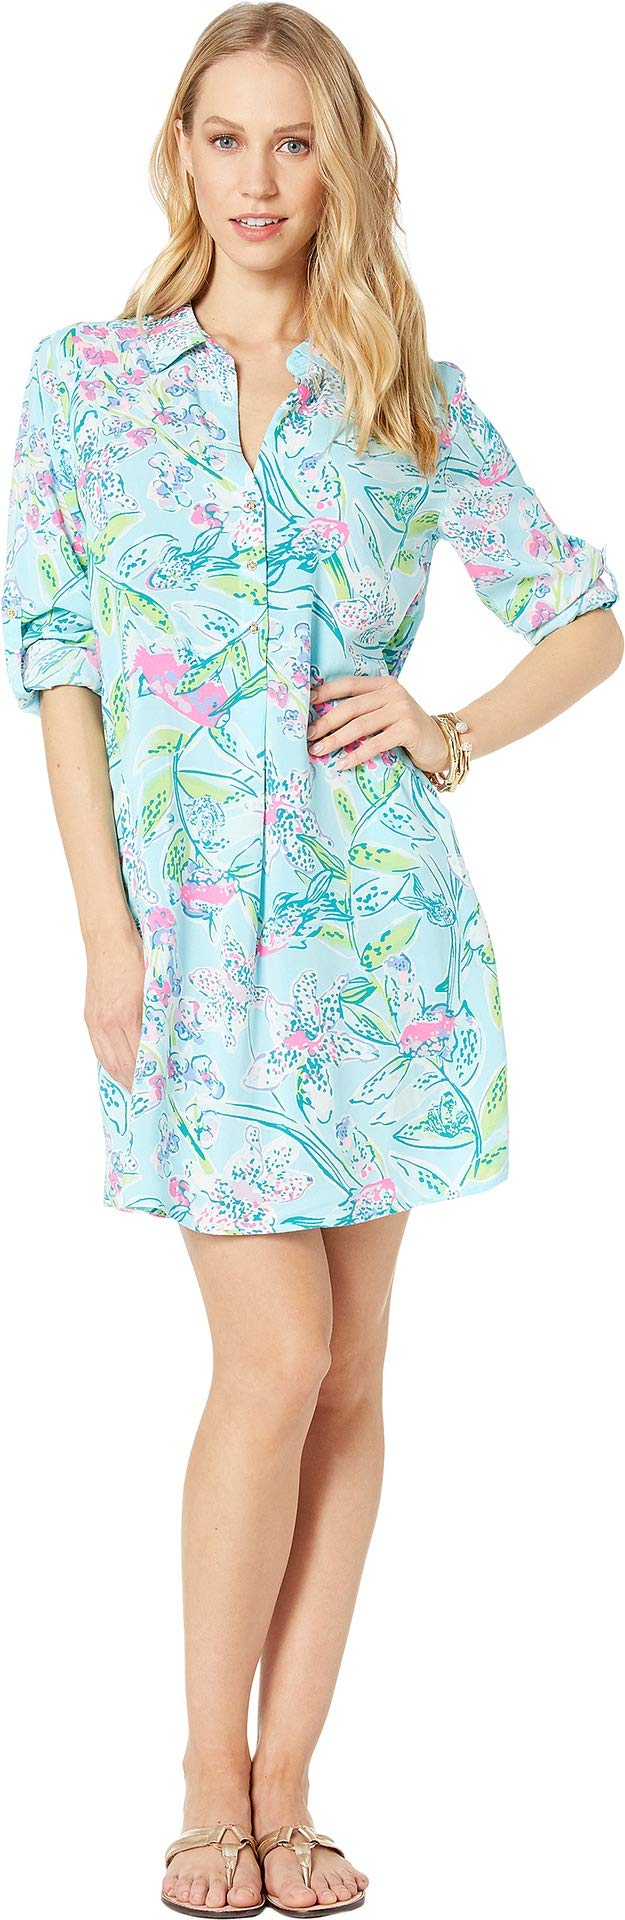 329131ca4bc Lilly Pulitzer Women's Lillith Tunic Dress Bali Blue Sway This Way Small